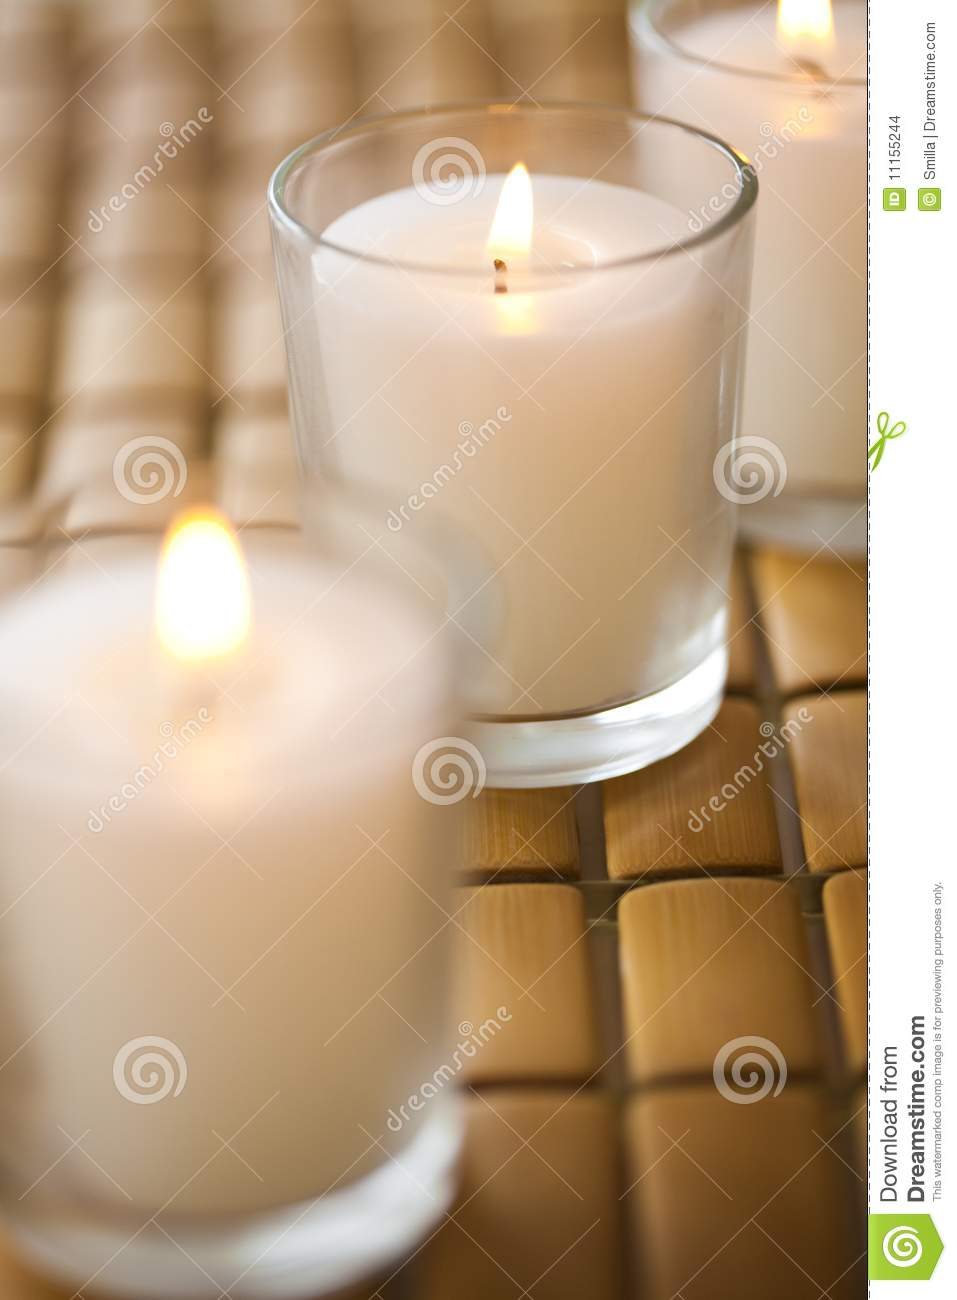 Burning scented candles stock images image 11155244 for Spa smelling candles